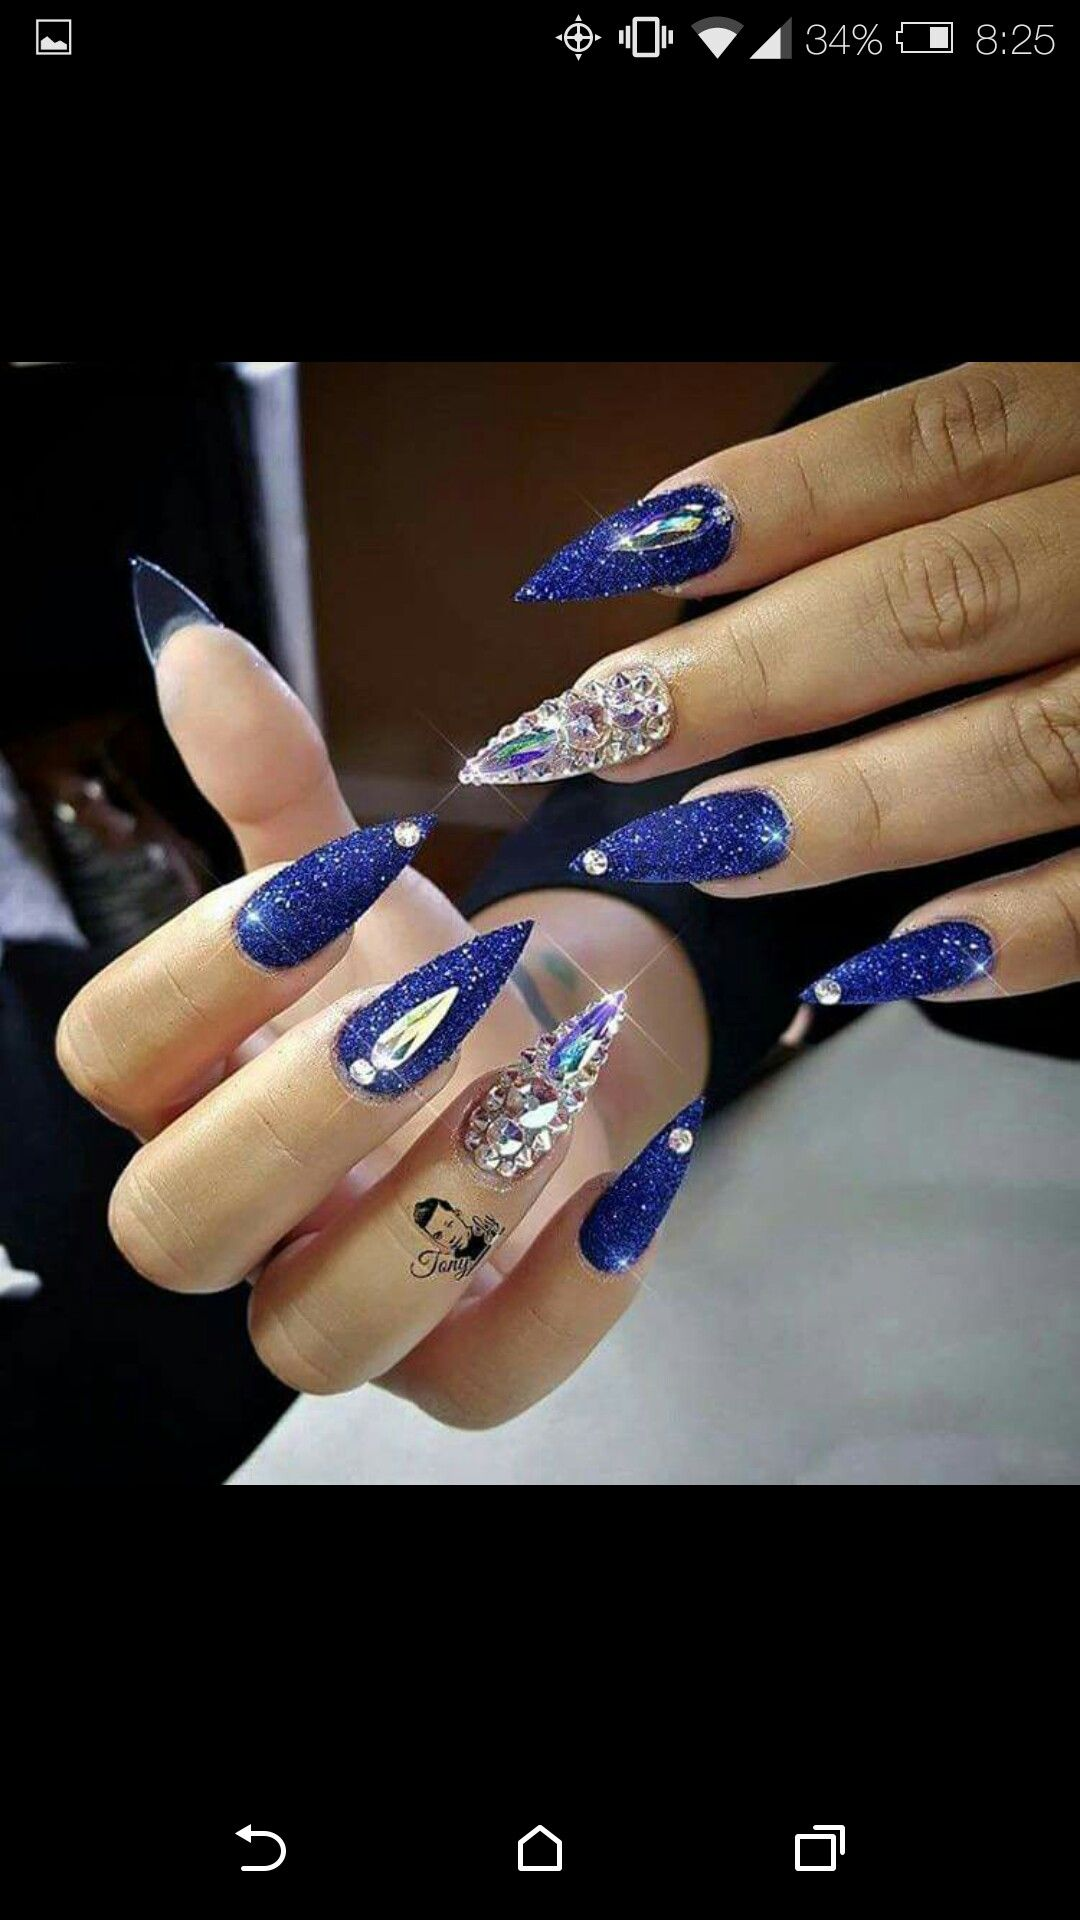 Pin by Lexy Dondranique on Nails | Pinterest